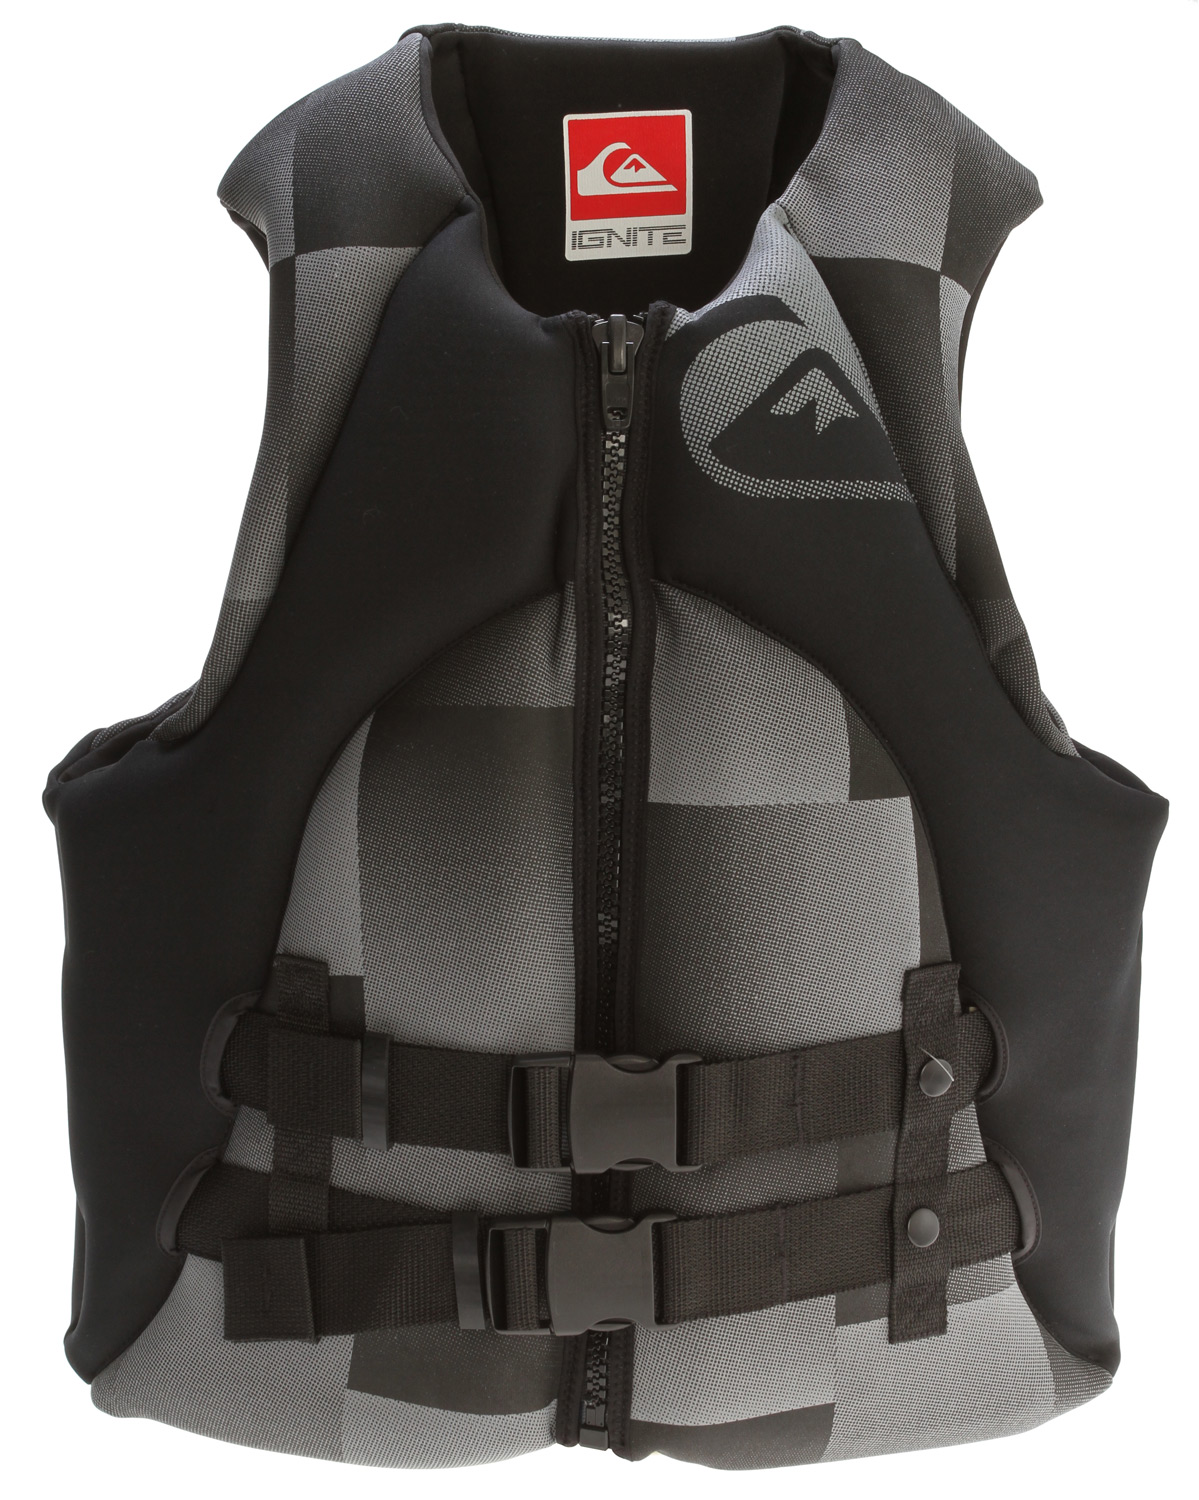 Wake Key Features of the Quiksilver Vengeance USCG Vest: USCG approved PFD Flatlock stitched 2 buckle front zip with hidden back straps Quiksilver custom molded file - $89.95